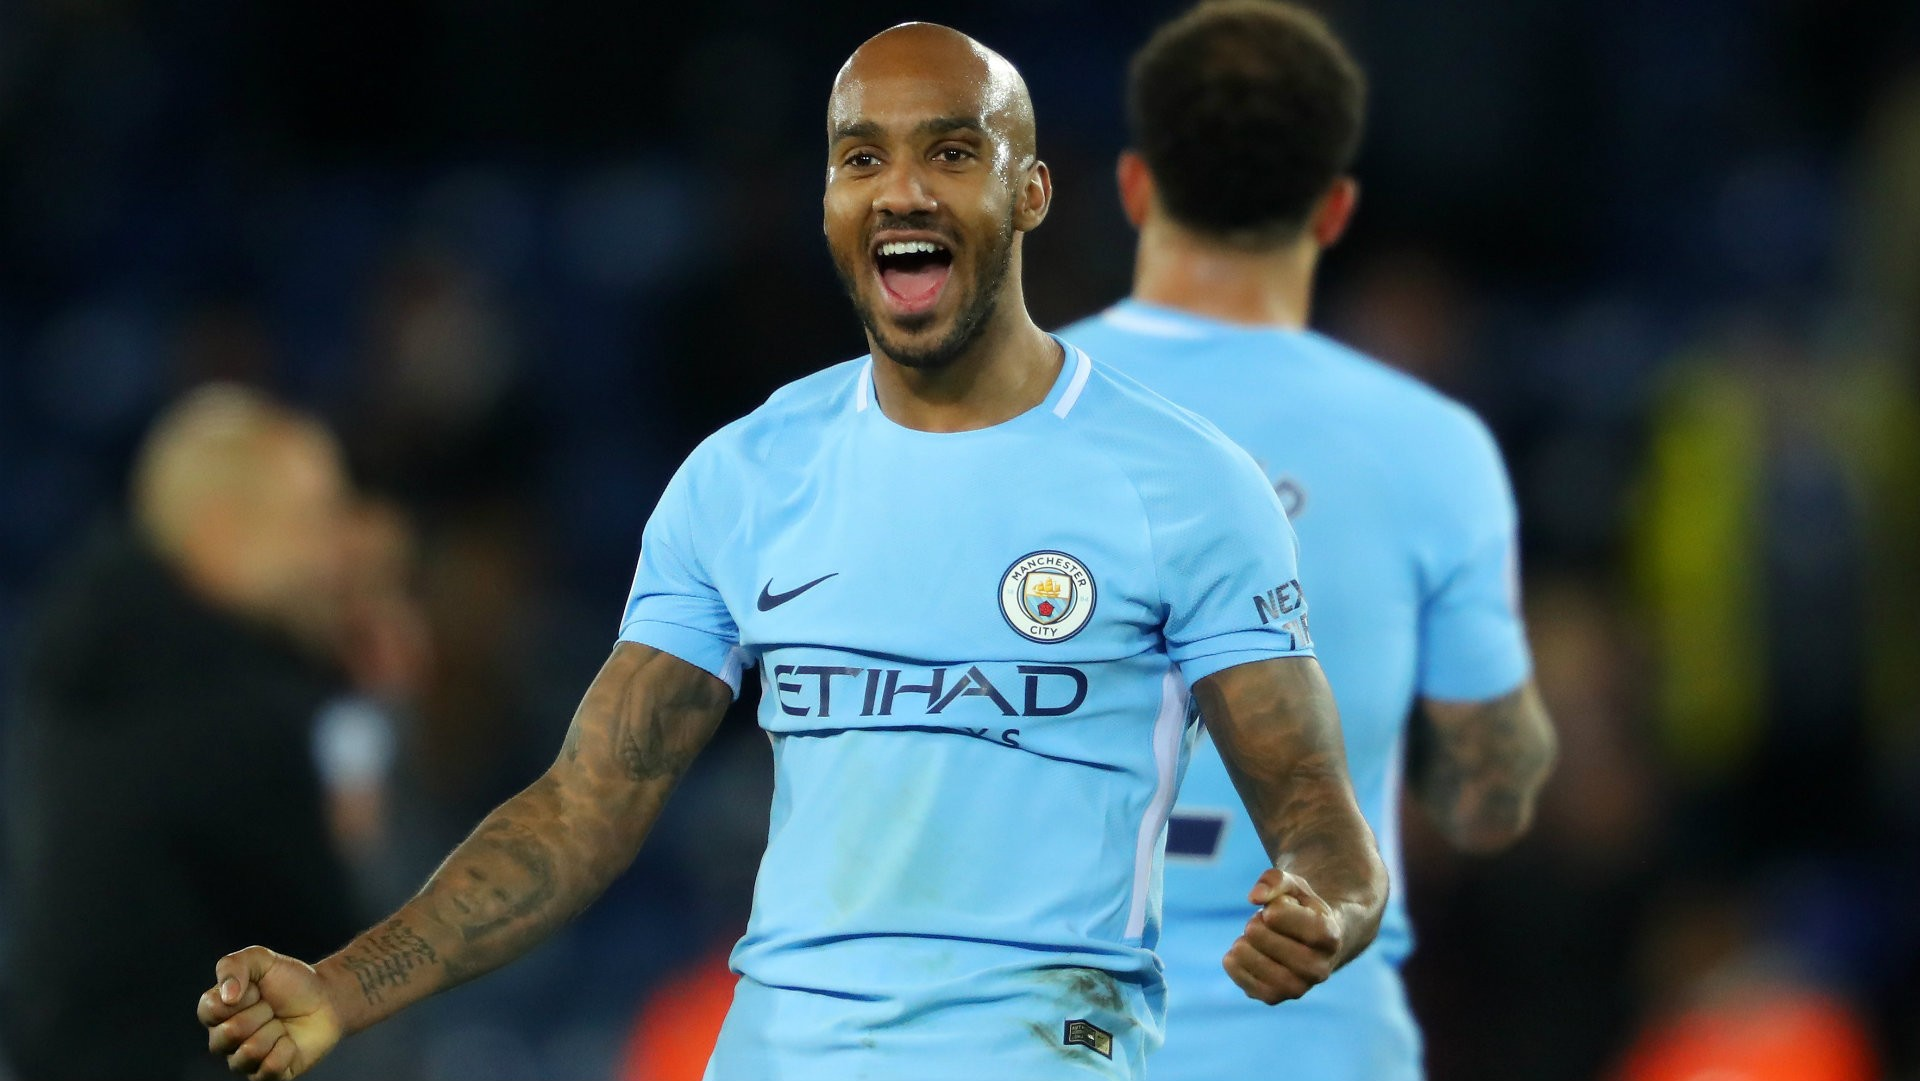 https://images.performgroup.com/di/library/GOAL/42/2d/fabian-delph-manchester-city-1718_2epxy0czkum1uhba8hqj5apj.jpg?t=496977648&quality=90&w=0&h=1260